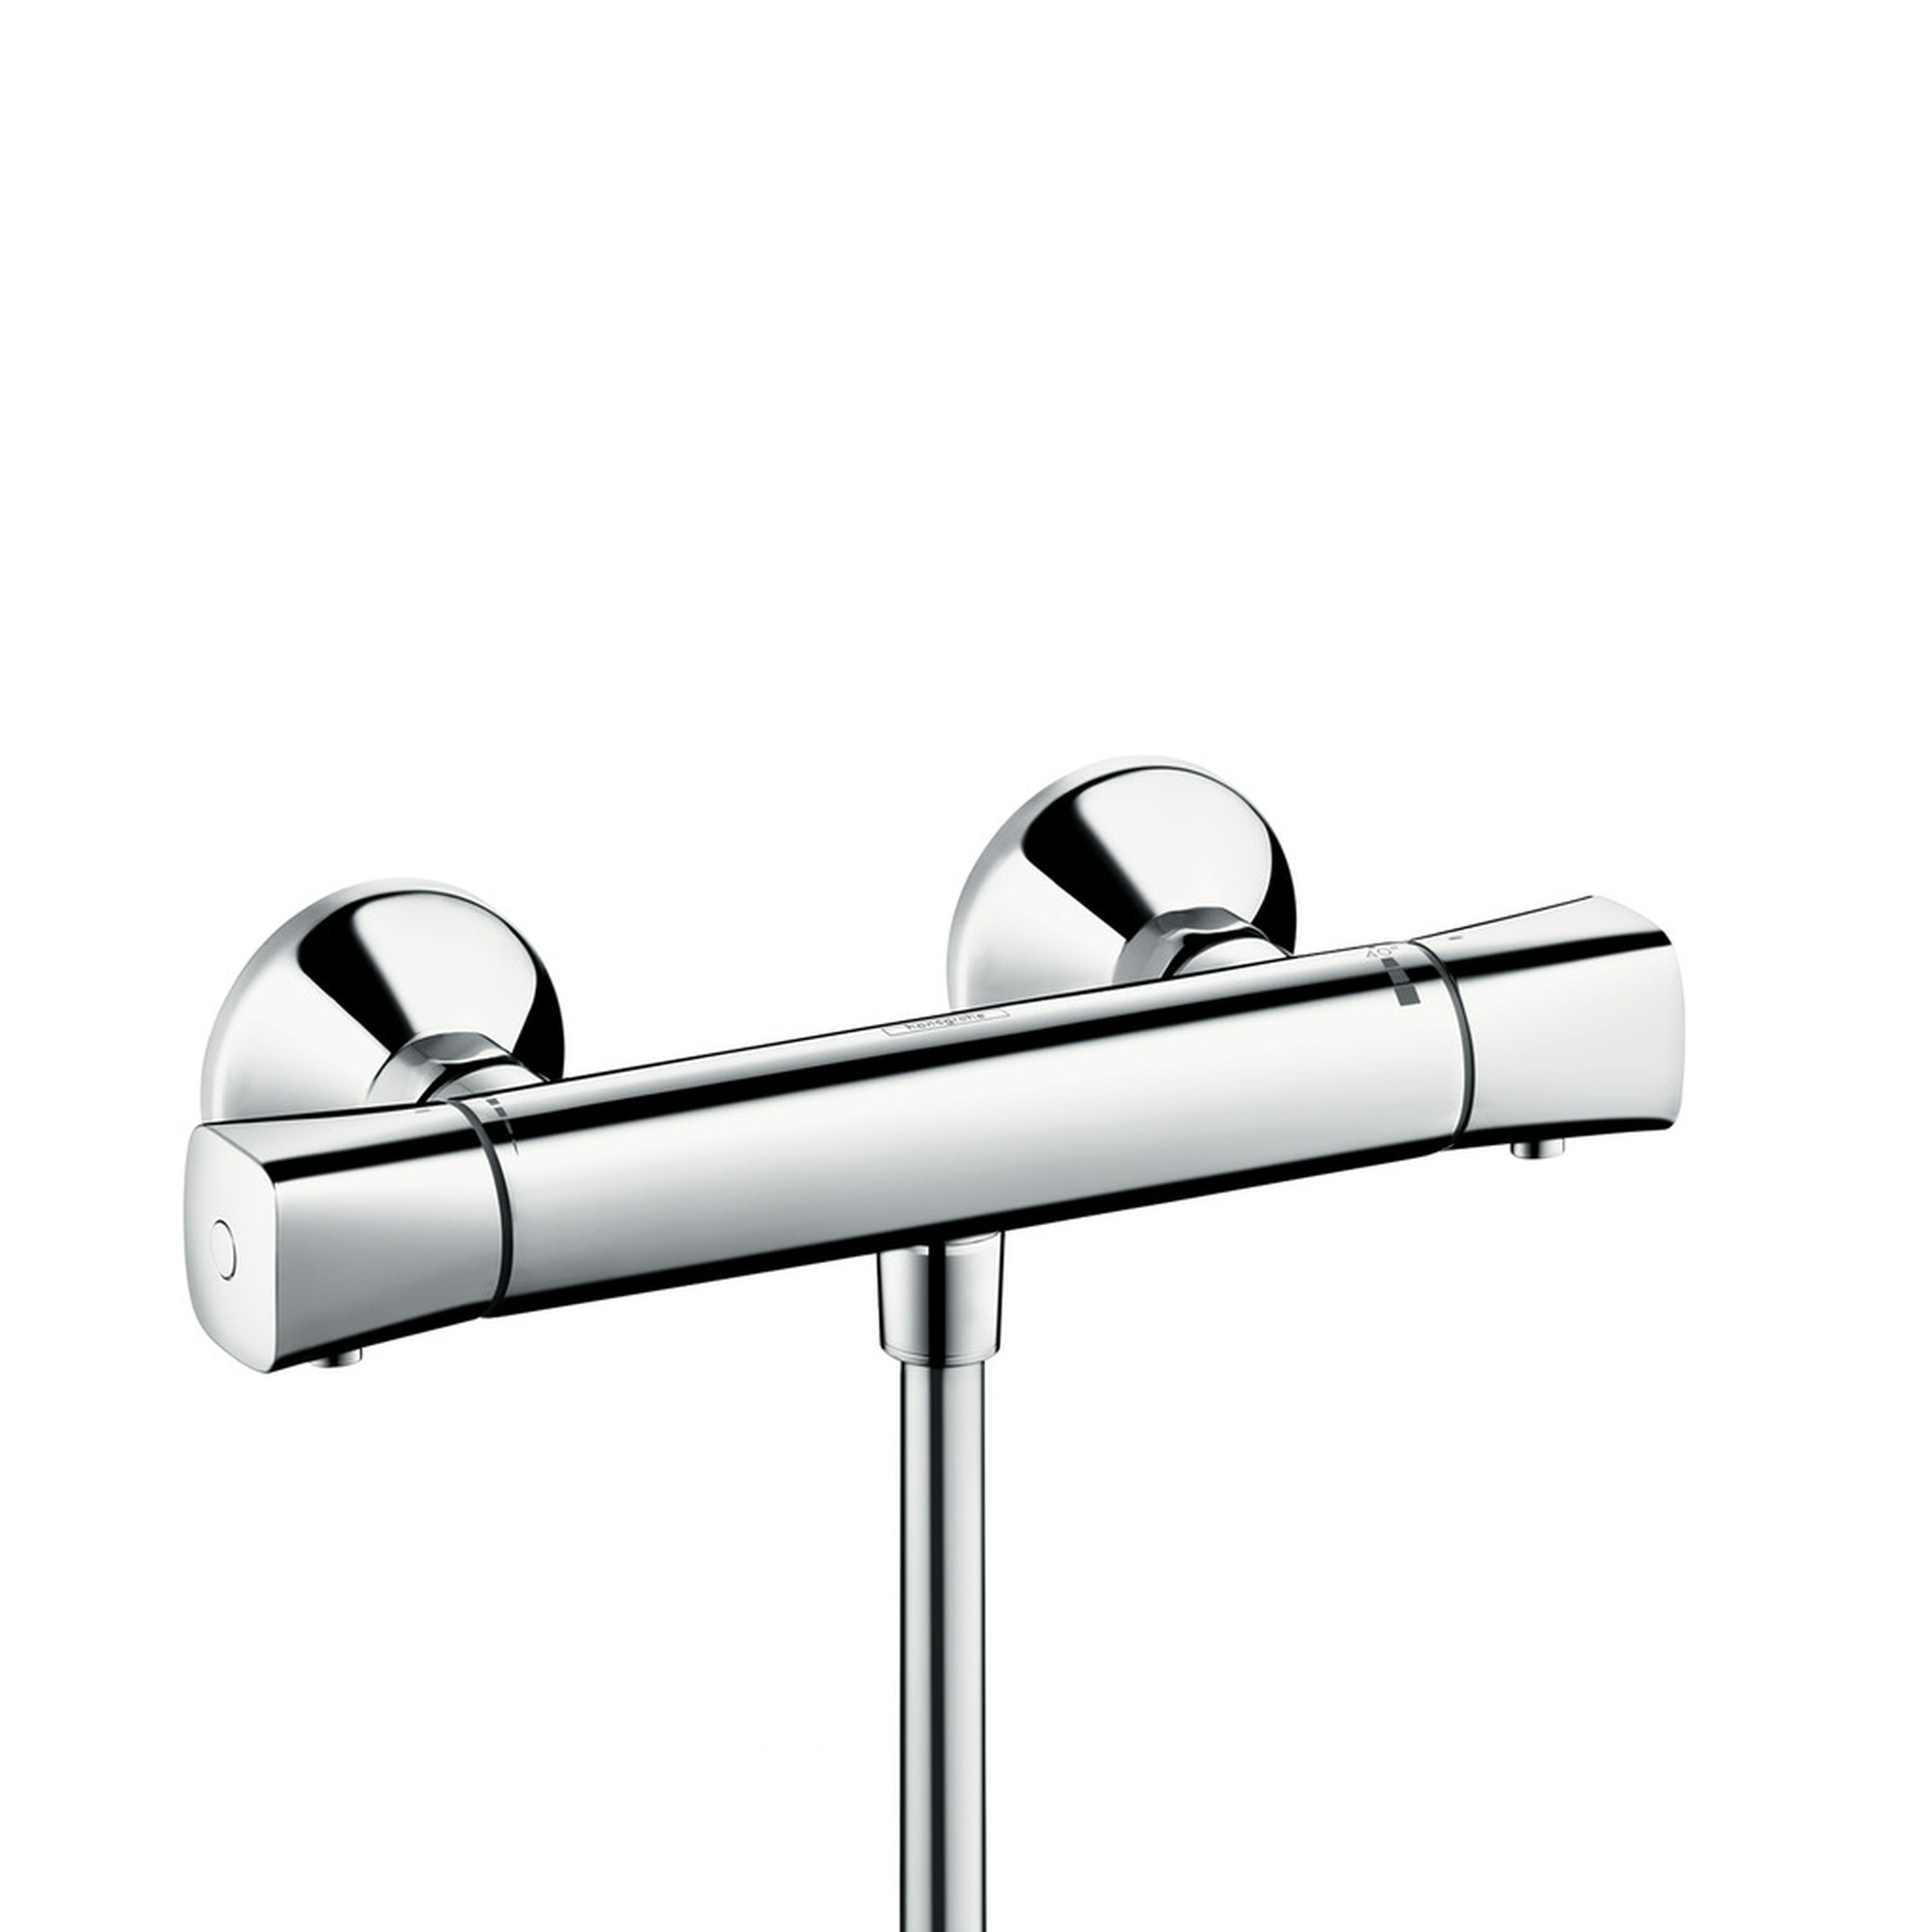 Hansgrohe Ecostat douche thermostaat kraan 15mm chroom 13122000